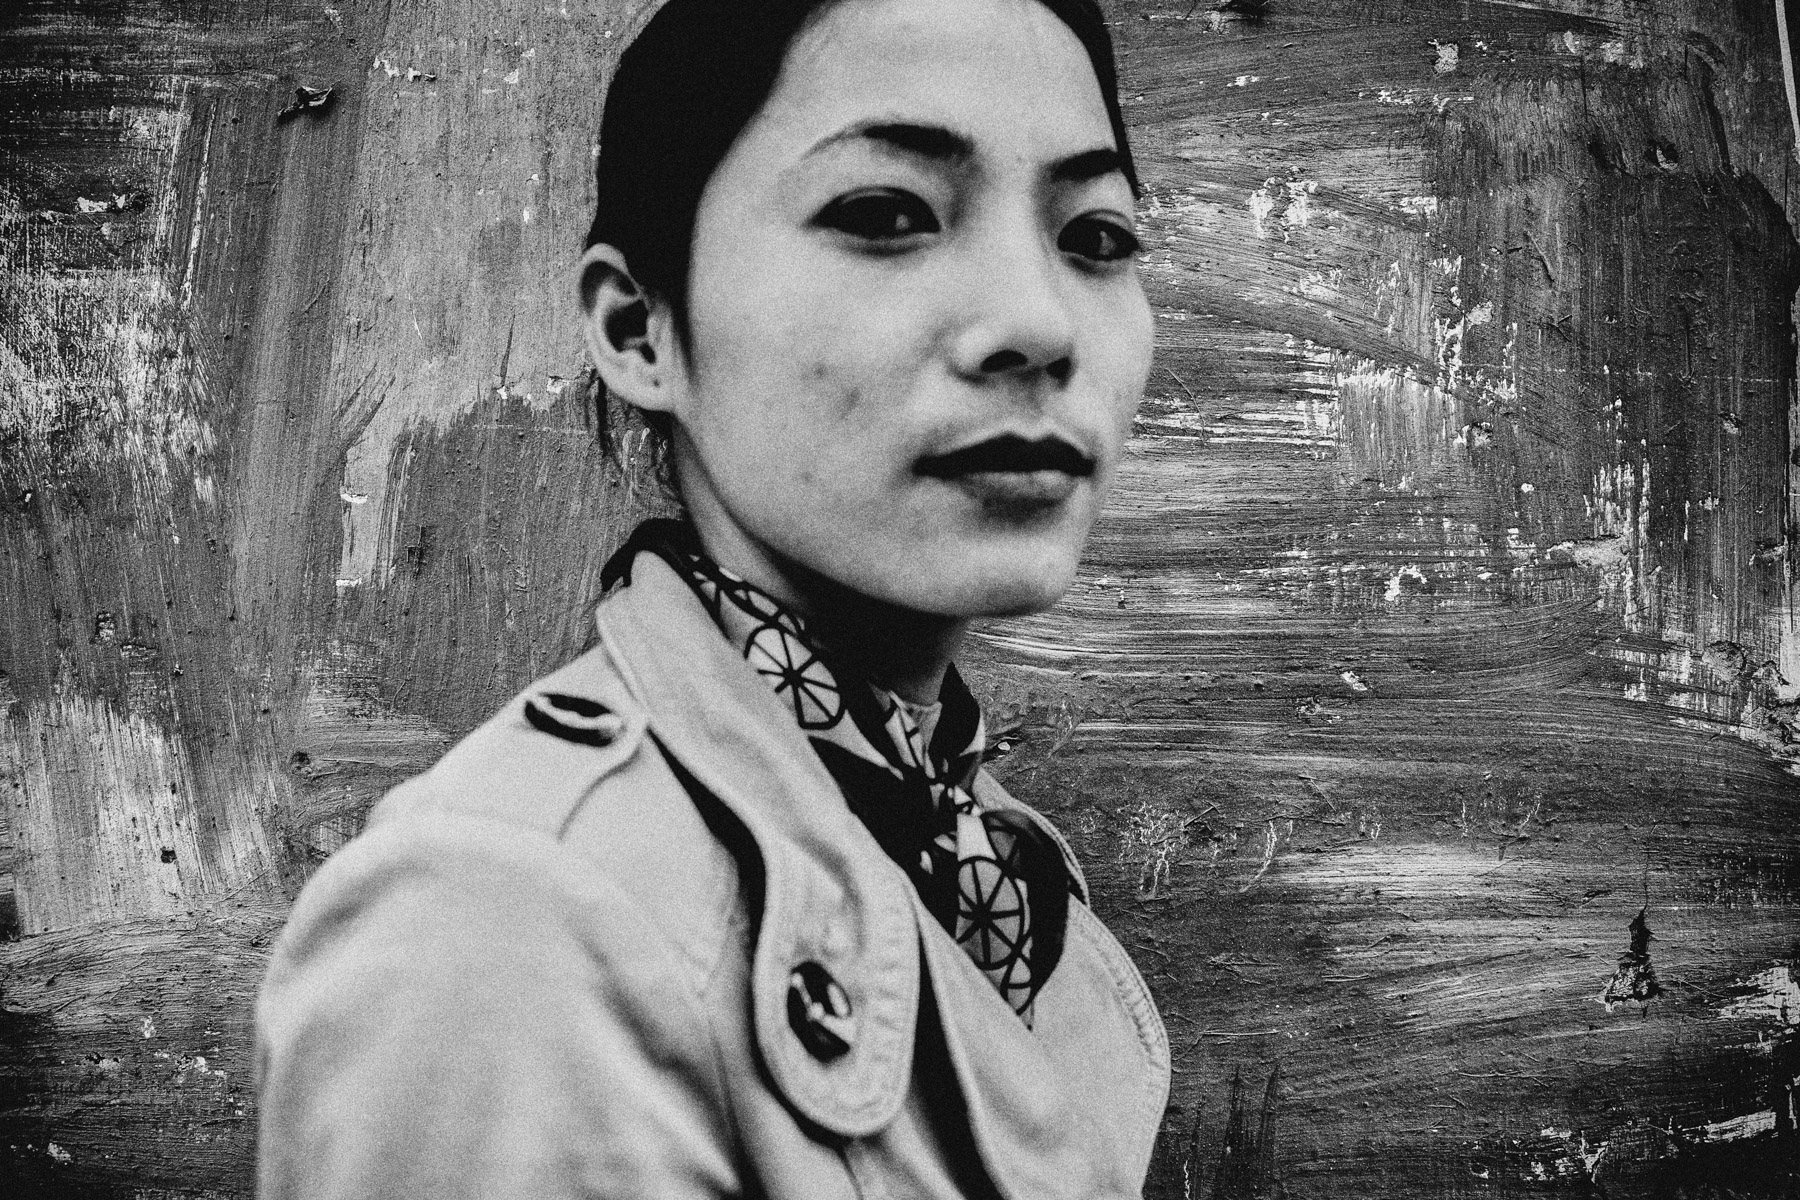 A portrait of Tran Thi Hue, Vietnam's first Miss HIV pageant winner in 2010.